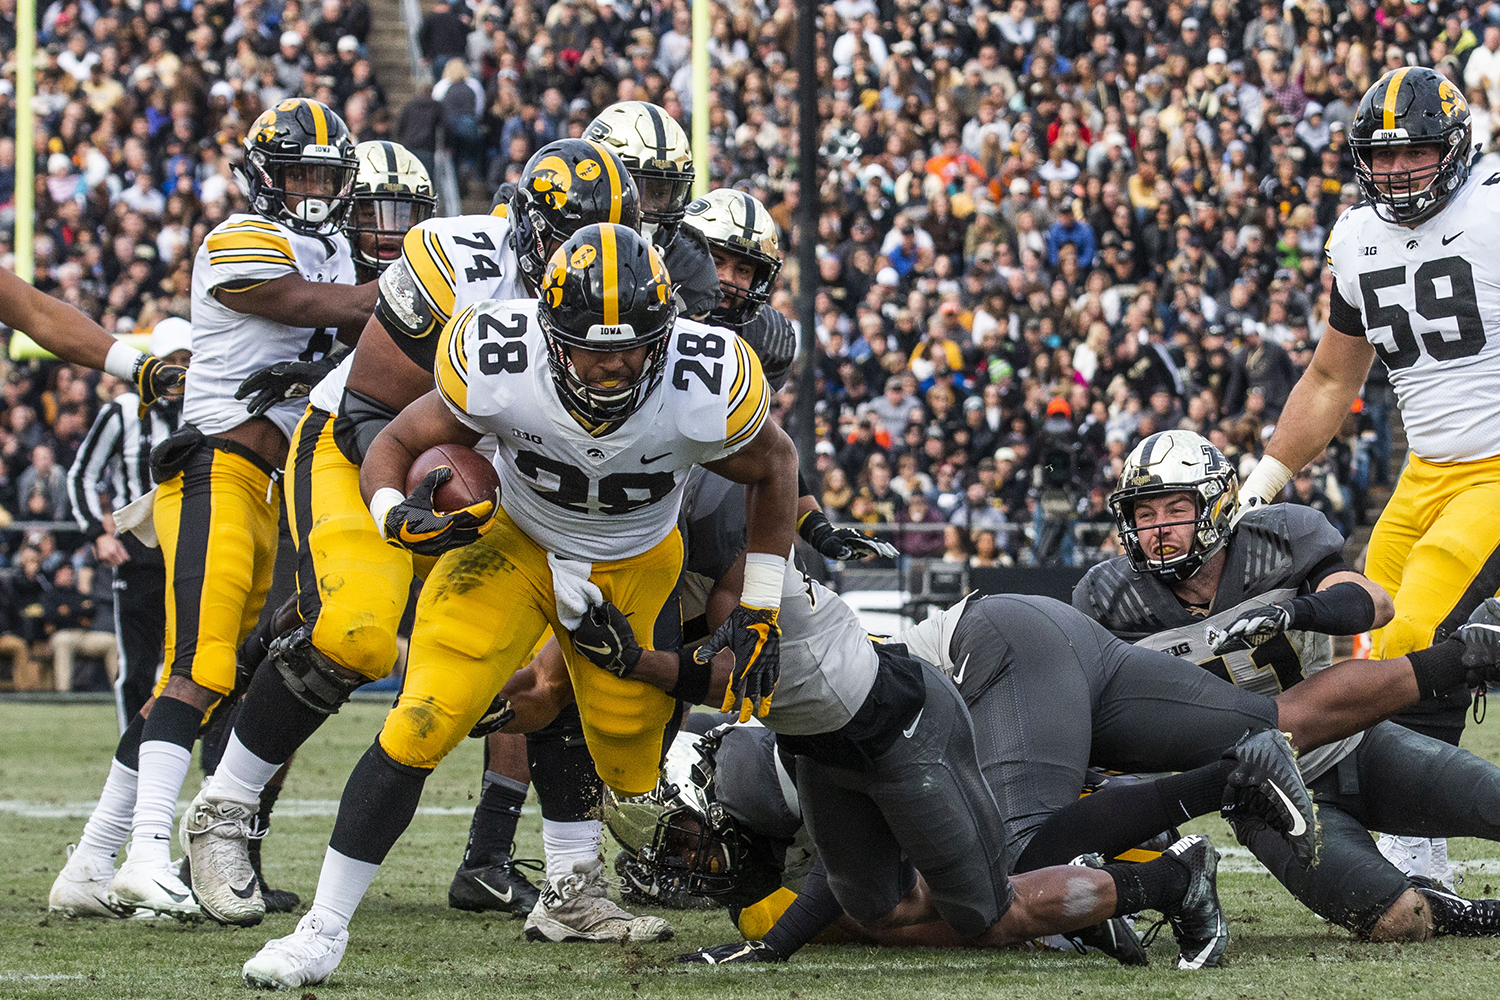 Iowa+running+back+Toren+Young+runs+the+ball+during+the+Iowa%2FPurdue+game+at+Ross-Ade+Stadium+in+West+Lafayette%2C+Ind.+on+Saturday%2C+November+3%2C+2018.+The+Boilermakers+defeated+the+Hawkeyes+38-36.+